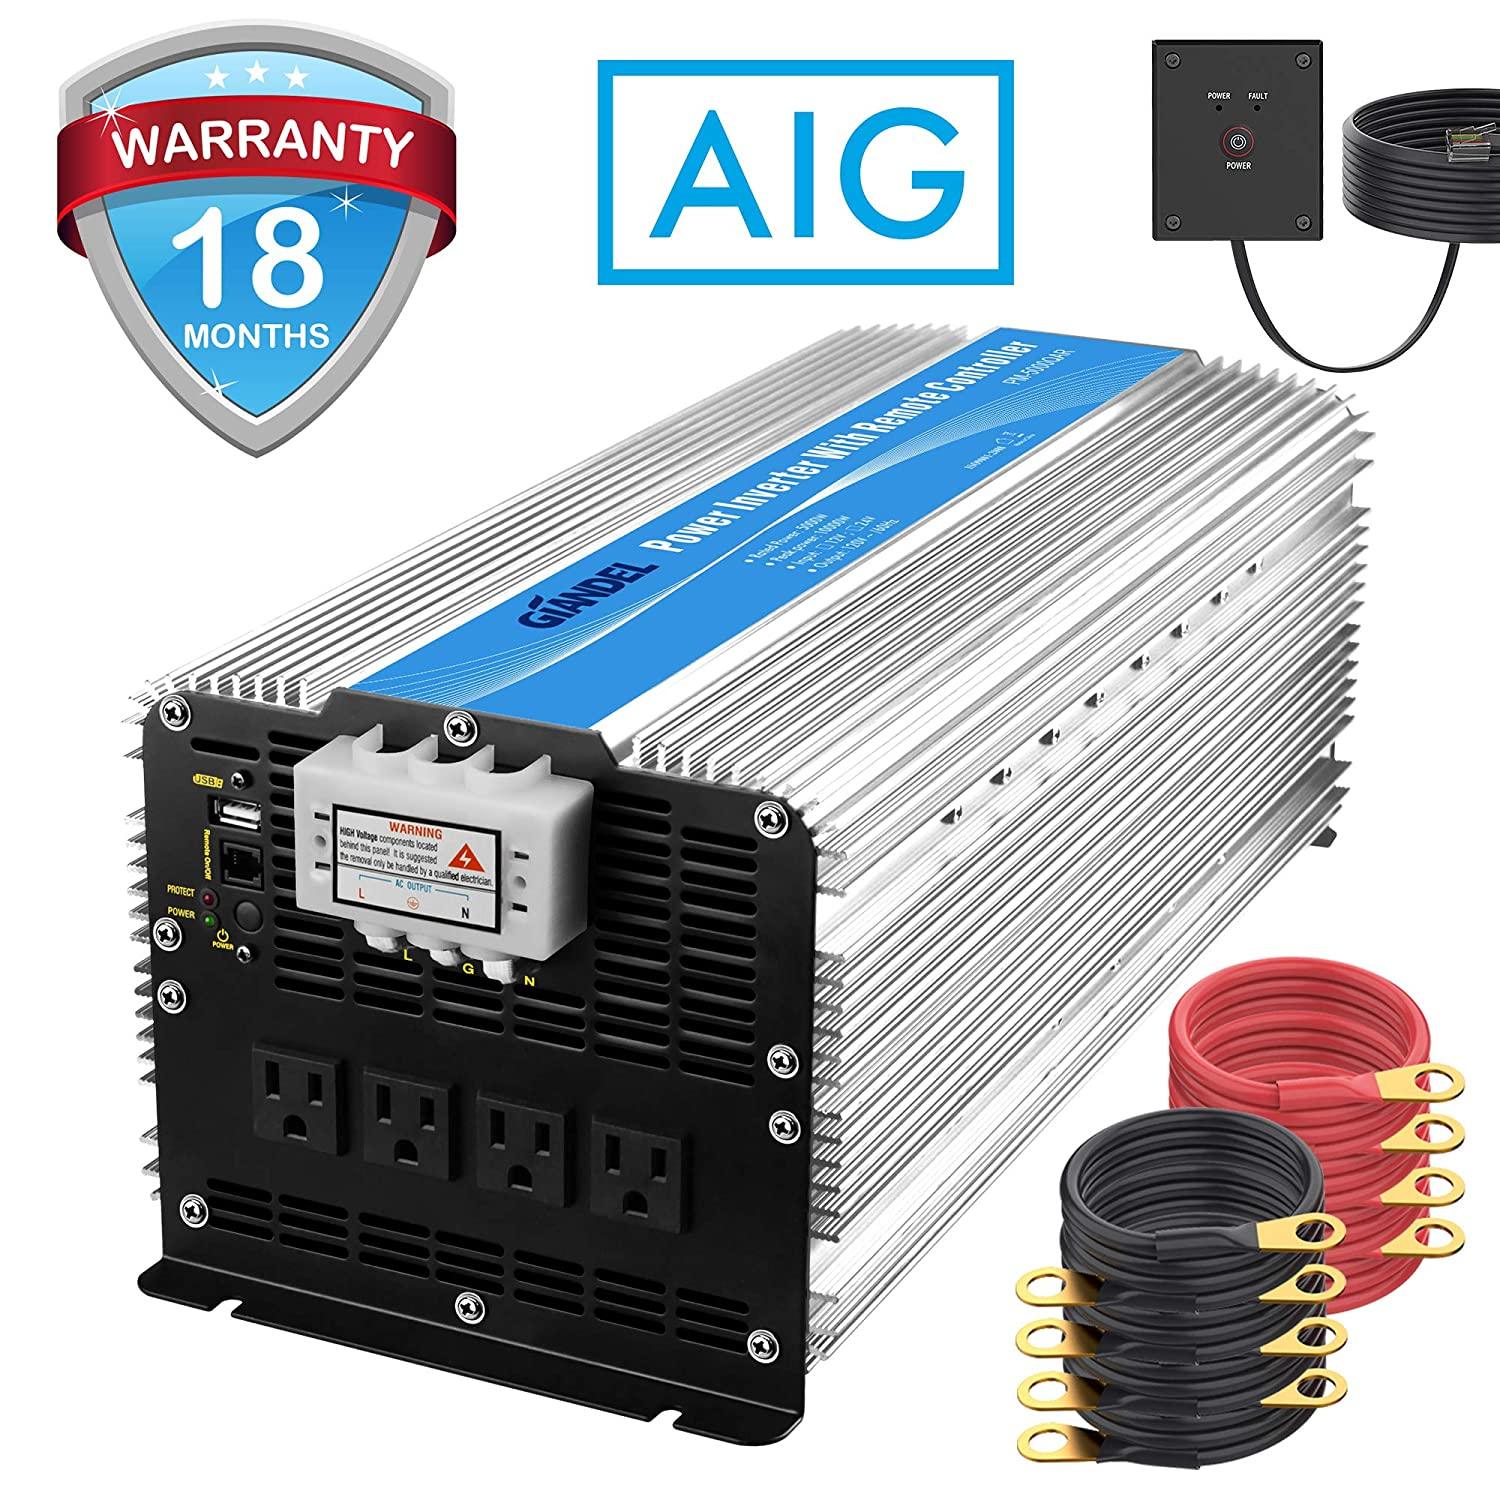 5 Best Power Inverters For Trucks Reviews - Updated 2020 6